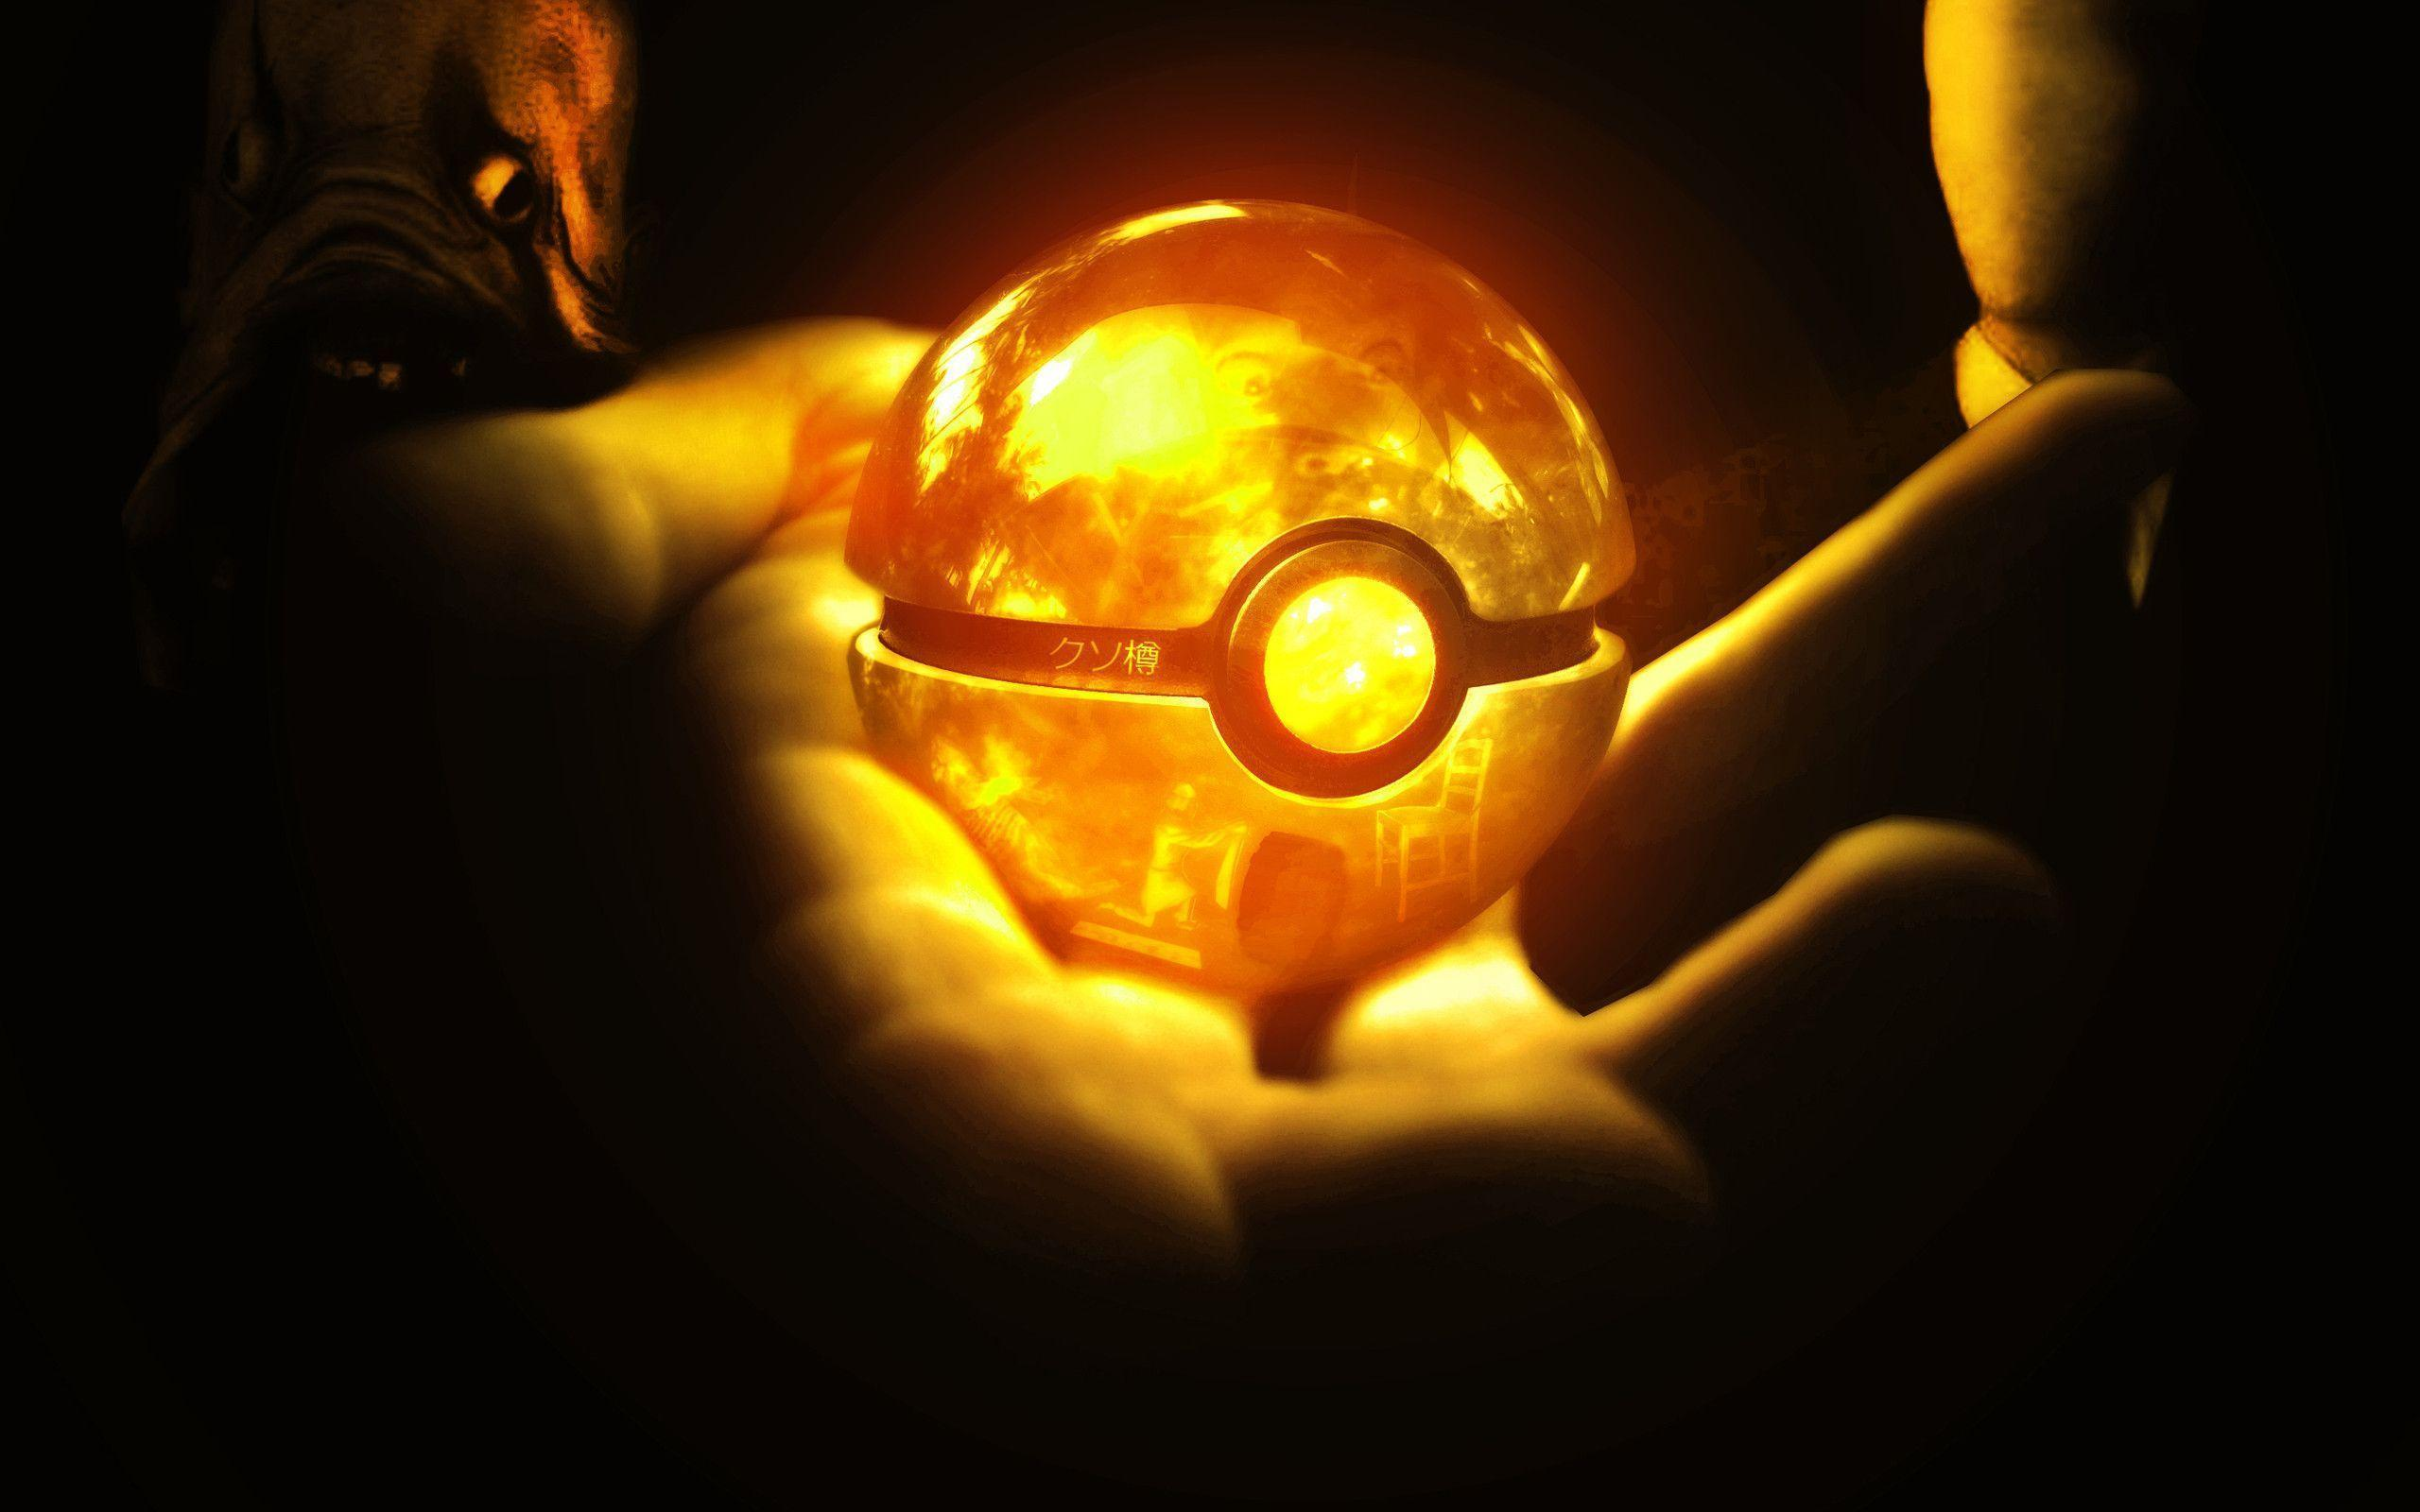 Pokemon 3d wallpapers wallpaper cave for 3d photo wallpaper